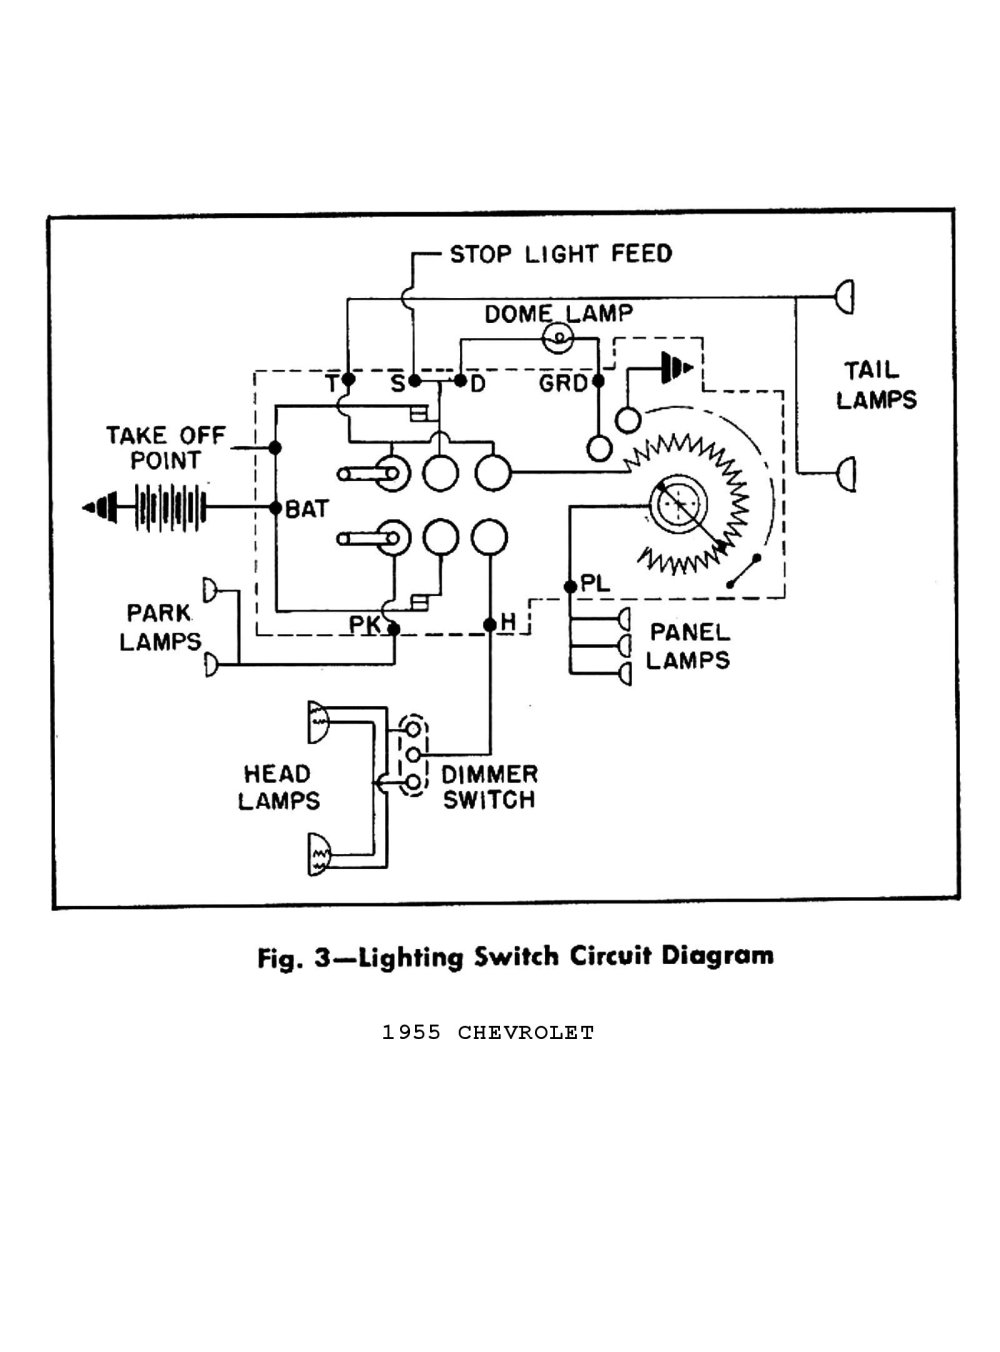 medium resolution of 1955 truck wiring diagrams 1955 electric windows seats 1955 lighting switch circuit chevy